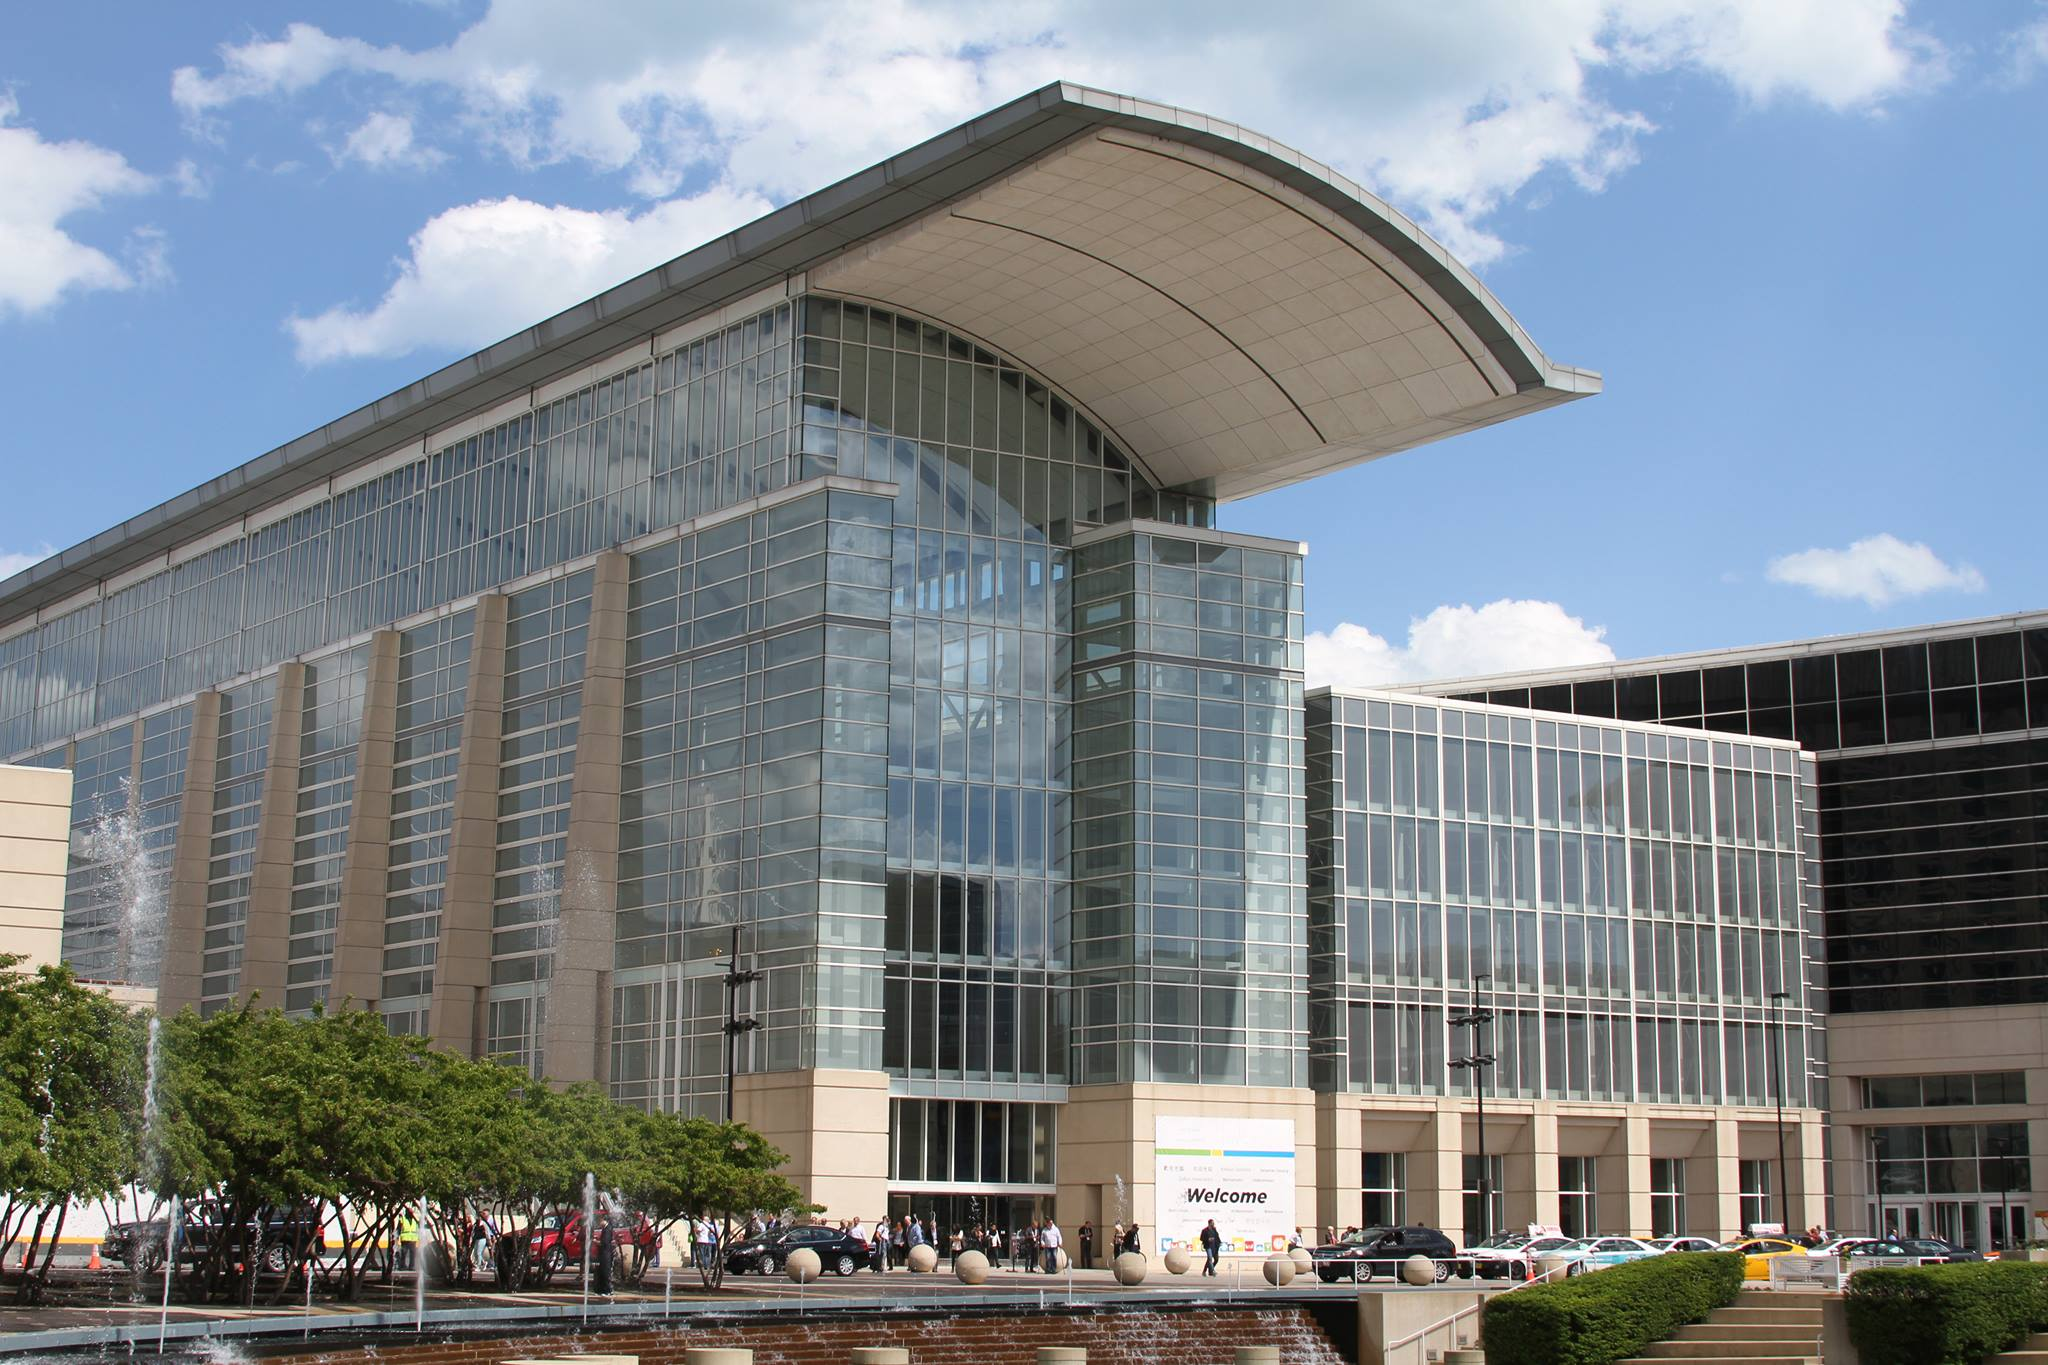 Where to Eat Near McCormick Place Convention Center